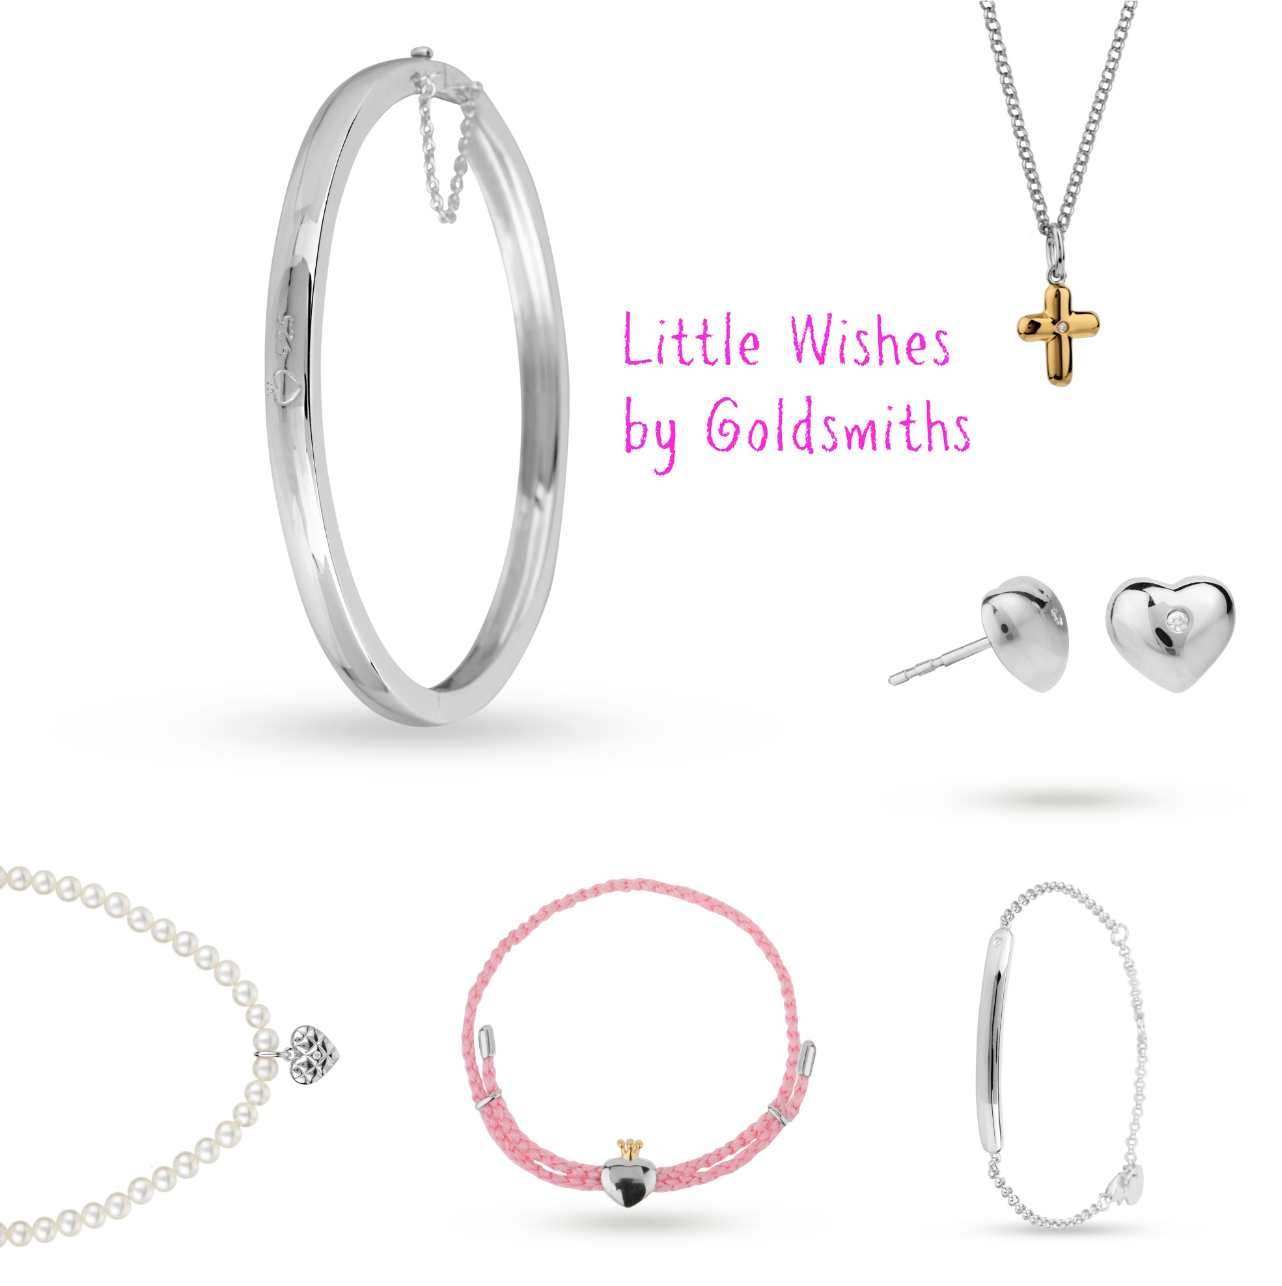 Mamasvib v i brand the new little wishes by goldsmiths jewellery collection for little girls